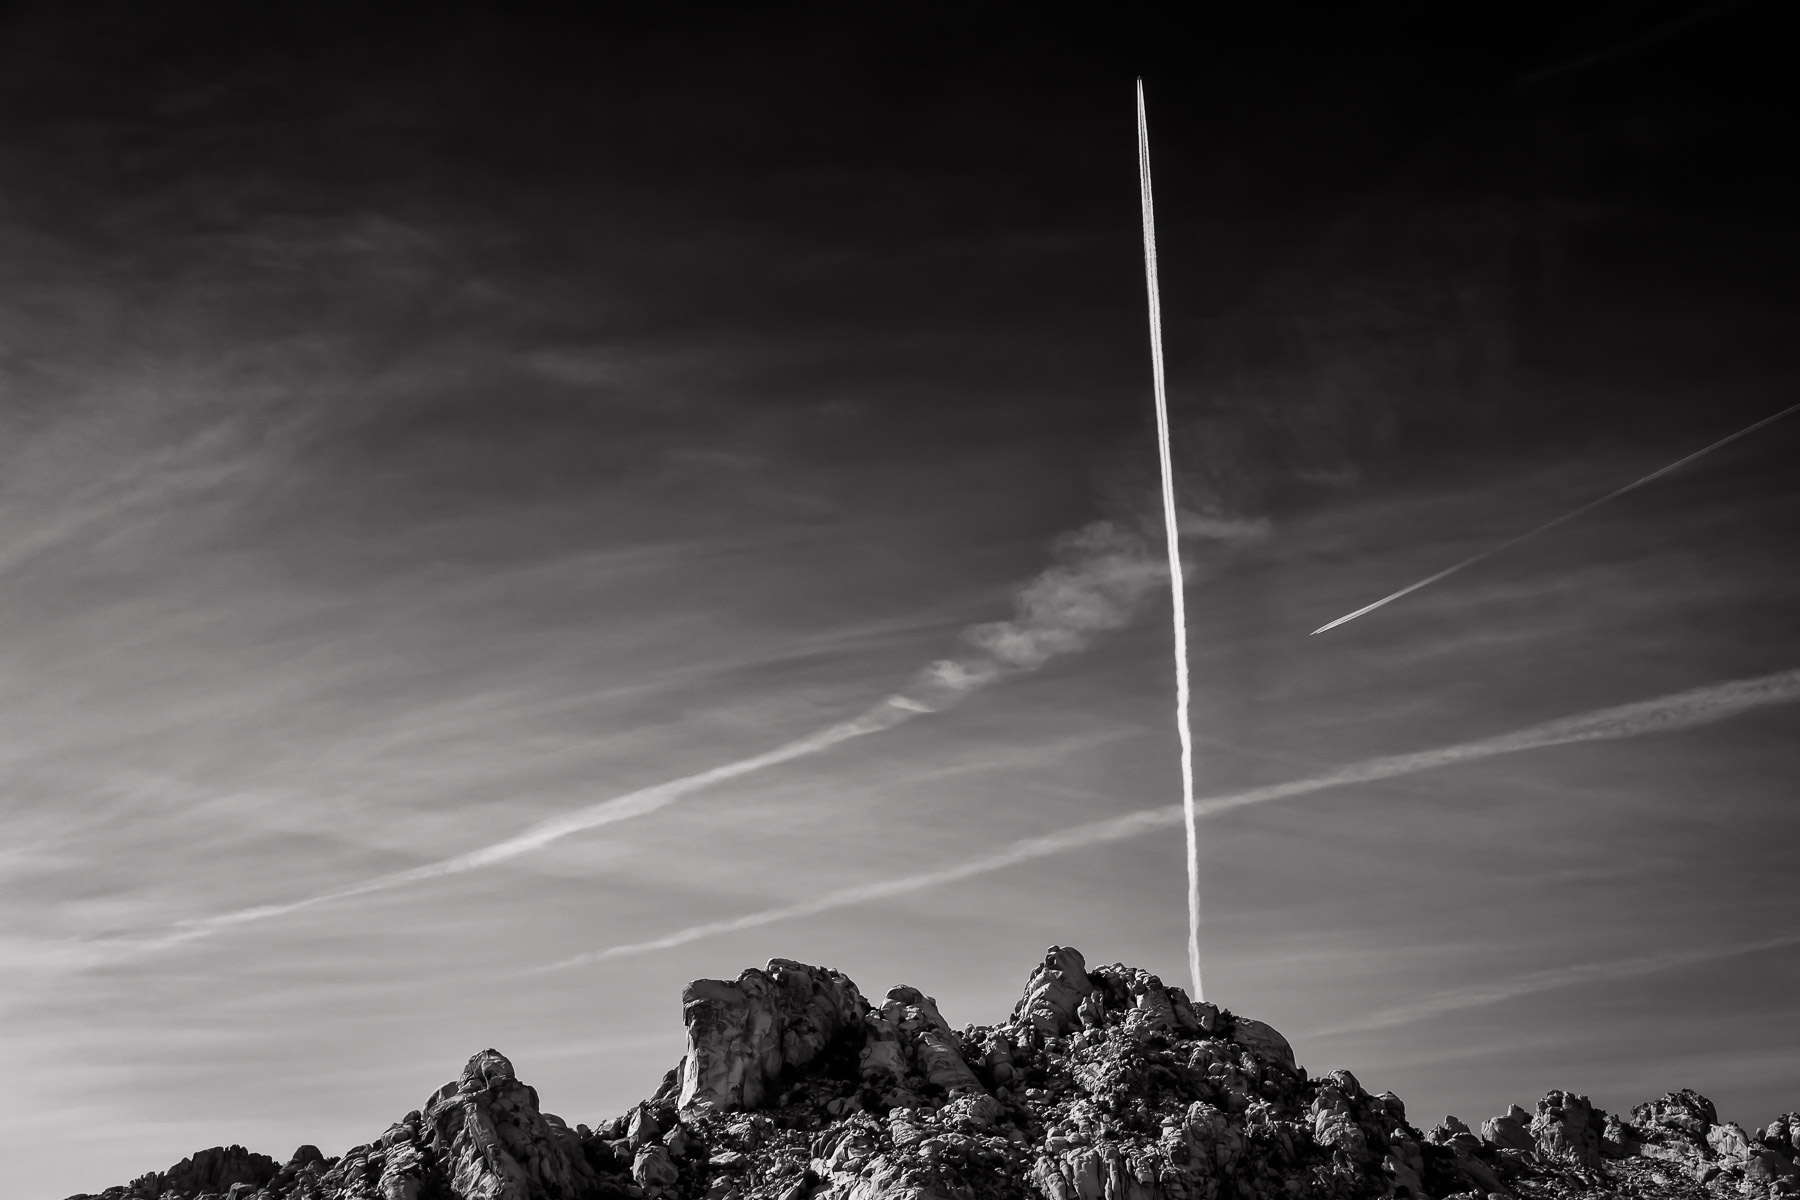 A high-flying jet leaves a contrail in the desert sky over the Mojave National Preserve, California.